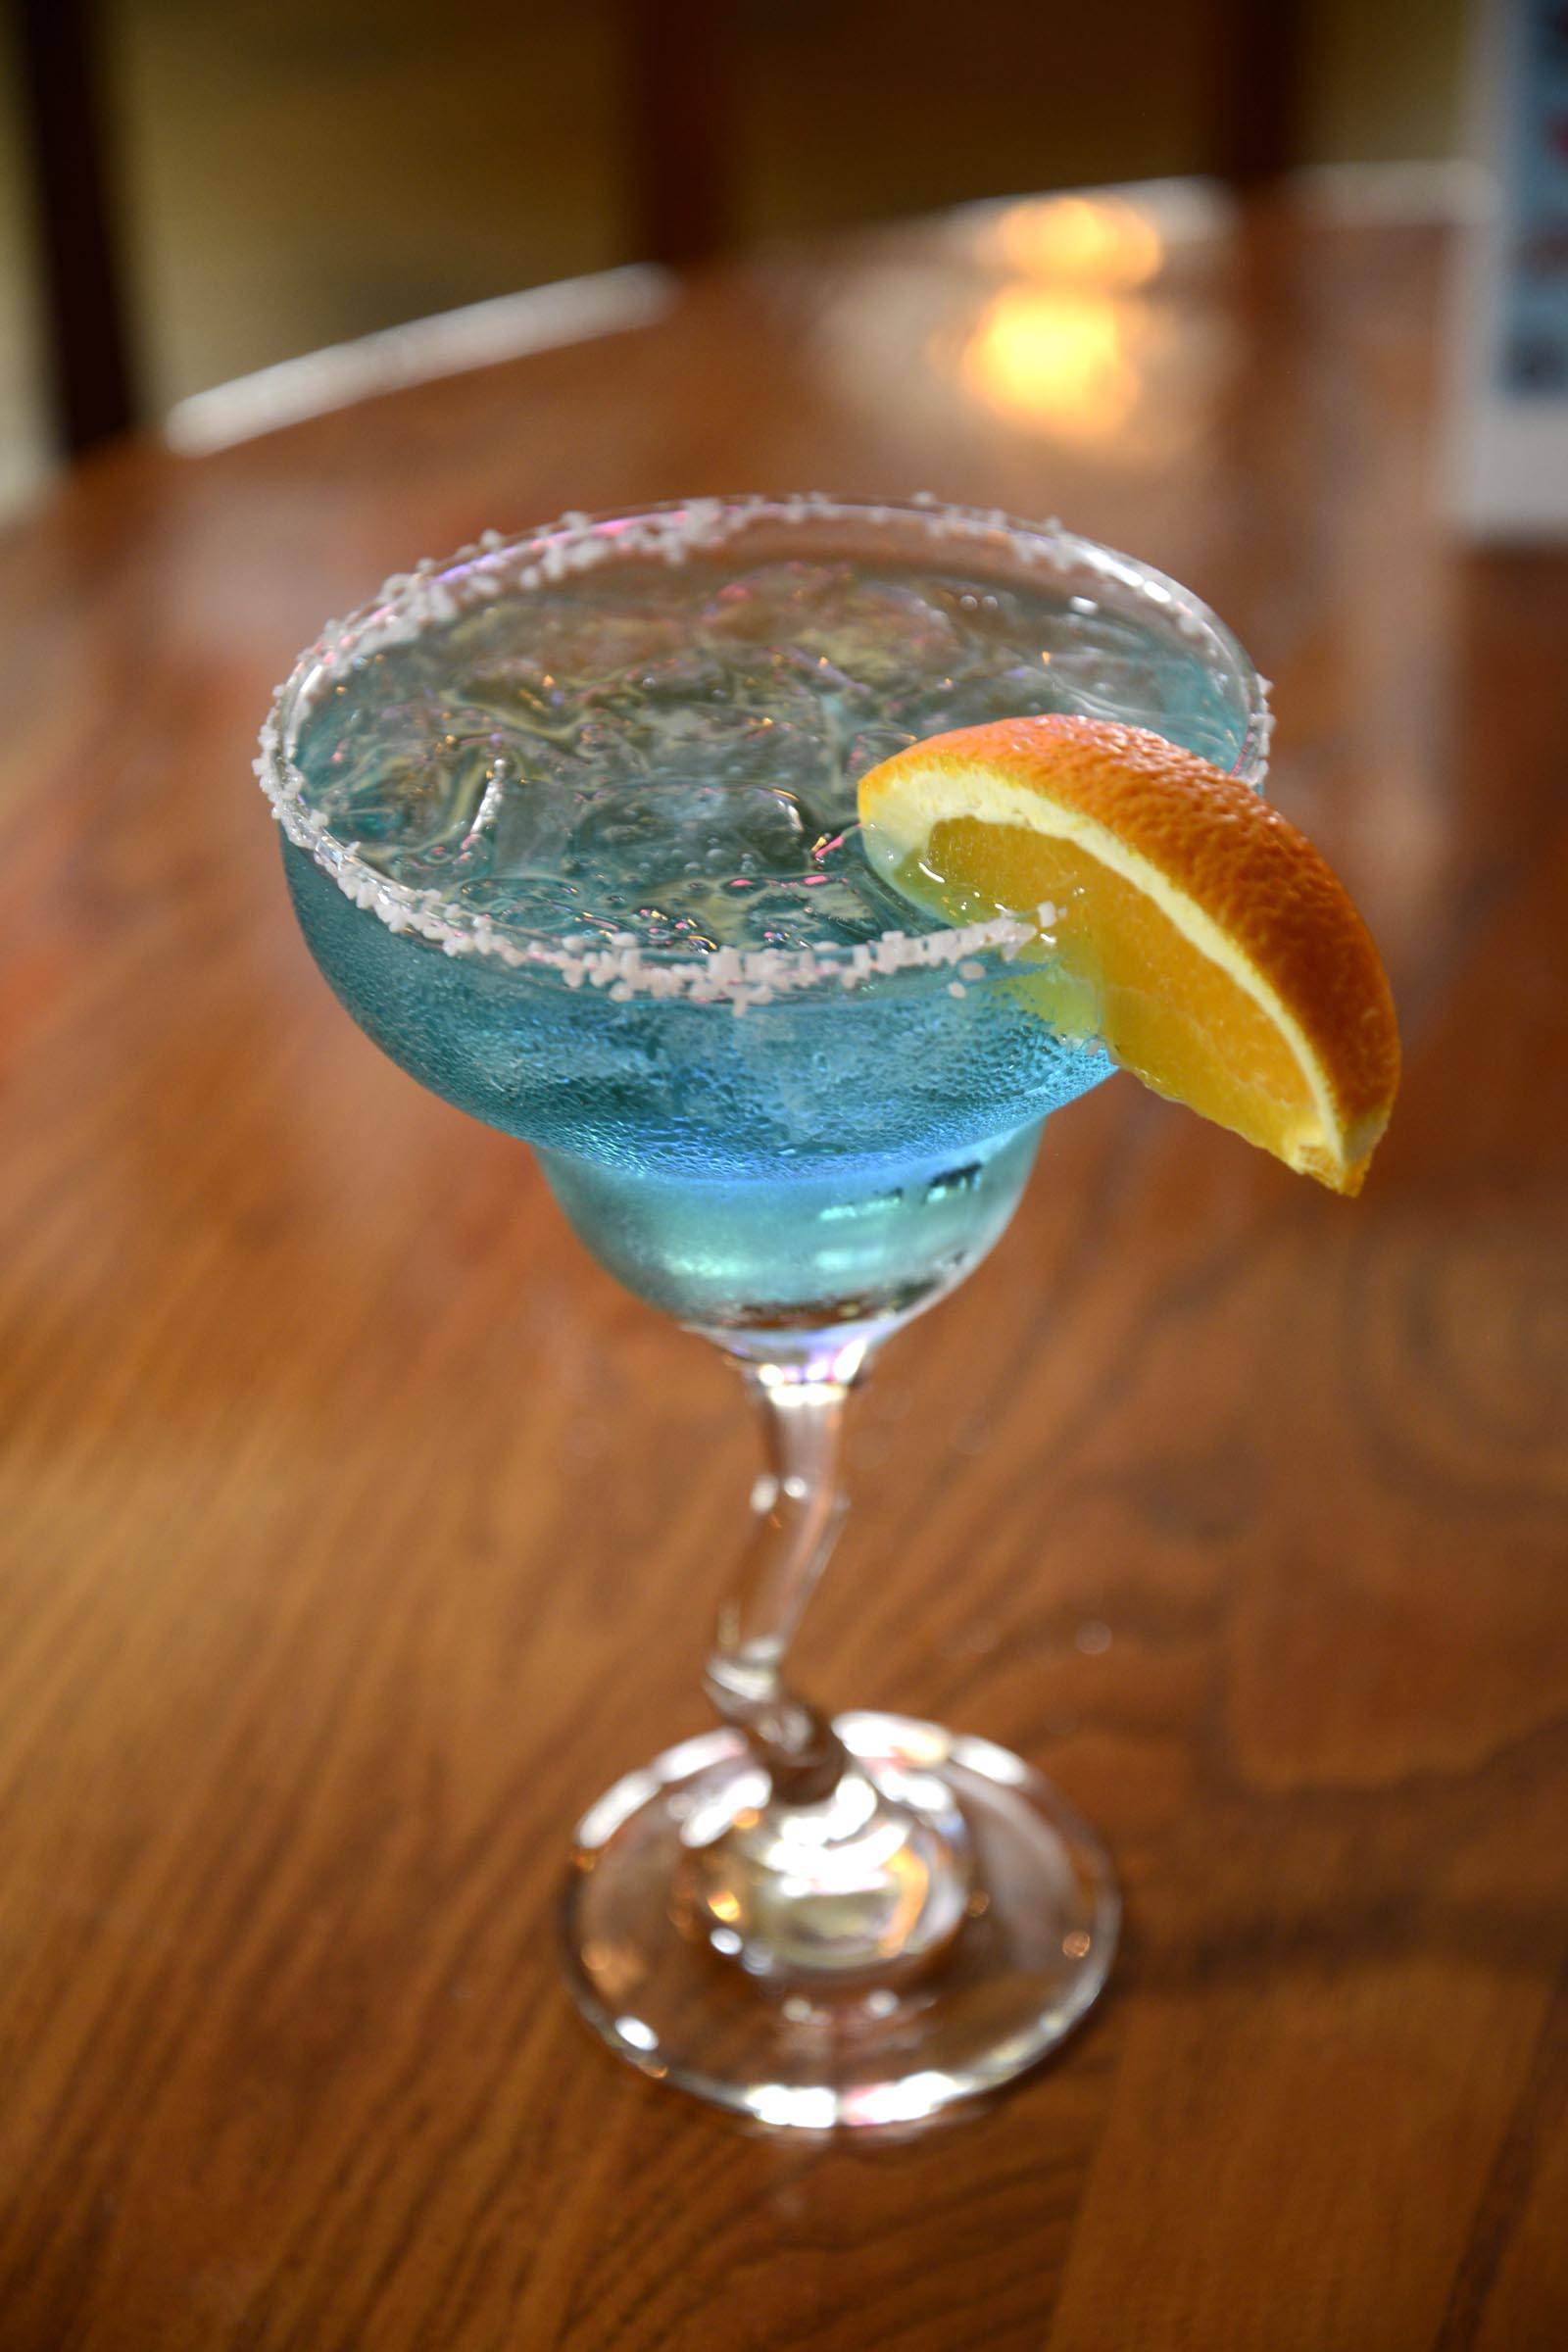 Cheer on the red, white and blue with a Deep Blue Sea martini at Claddaugh Irish Pub in Geneva.